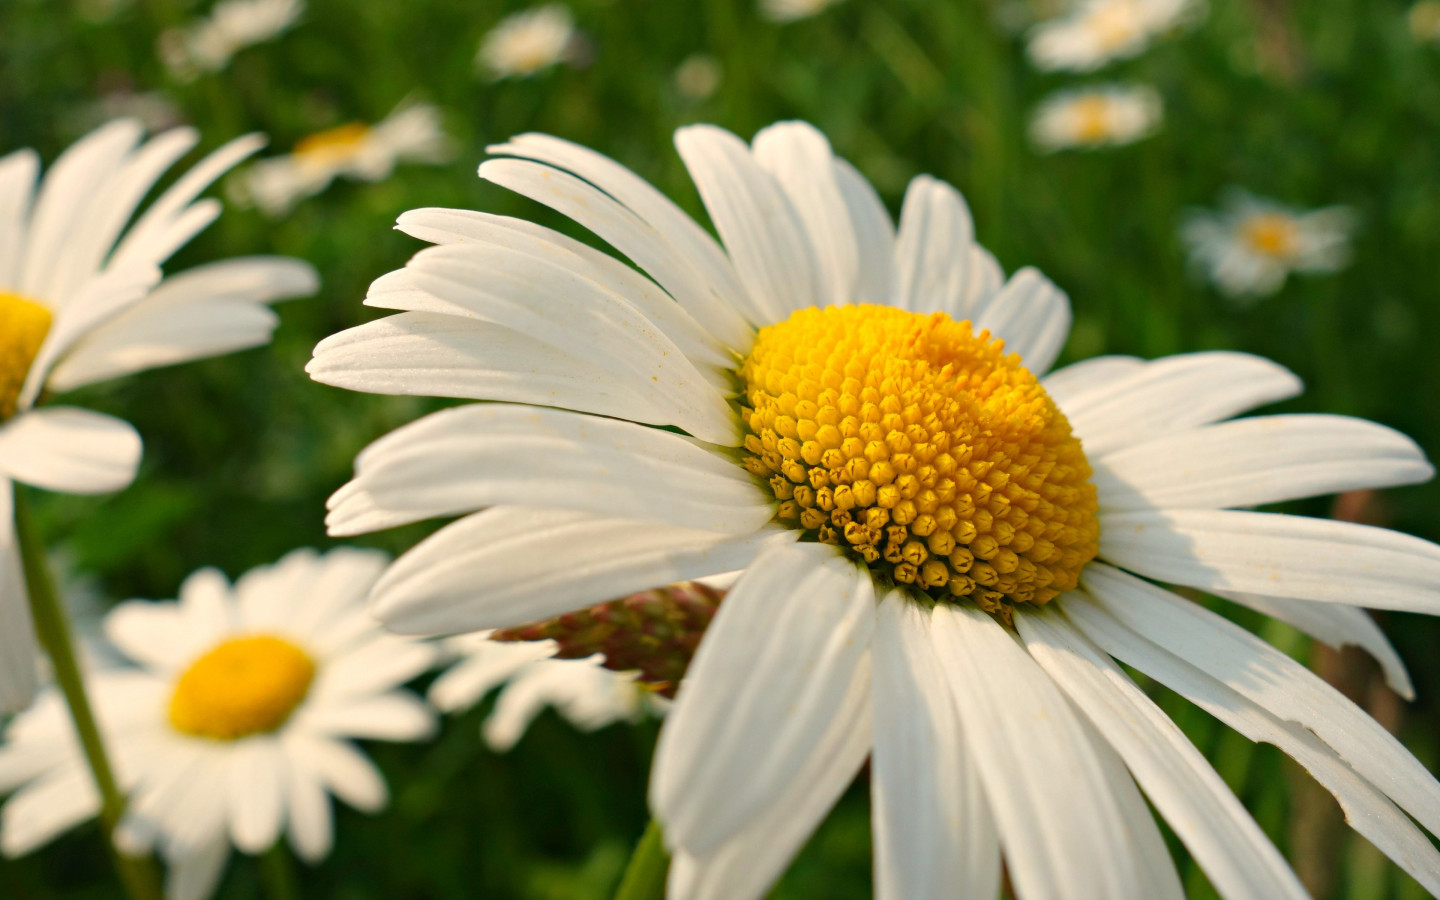 Natural daisy flowers wallpaper 1440x900